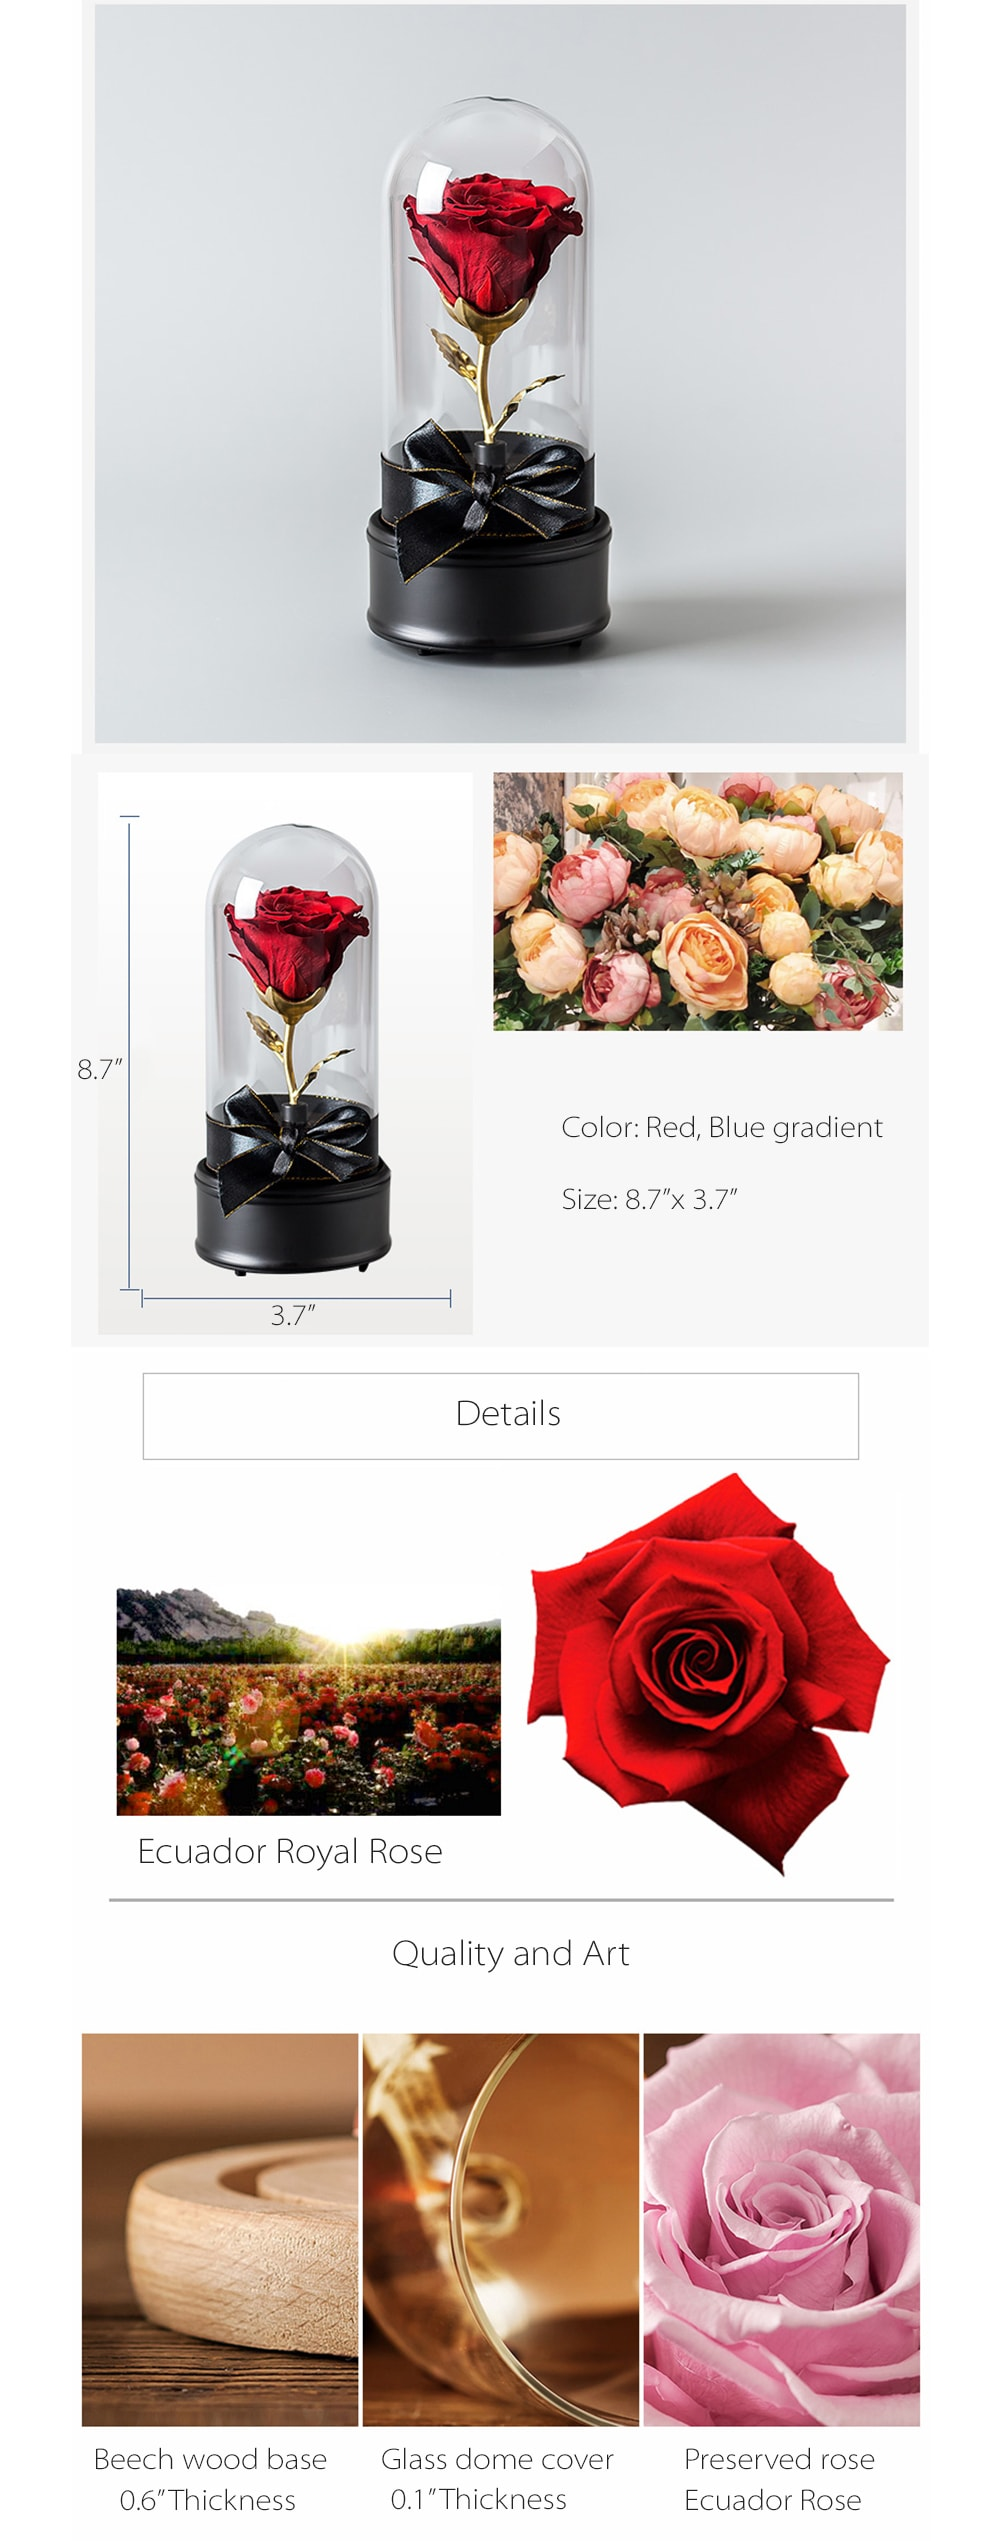 Live Rose A Perfect Gift For Your Lover